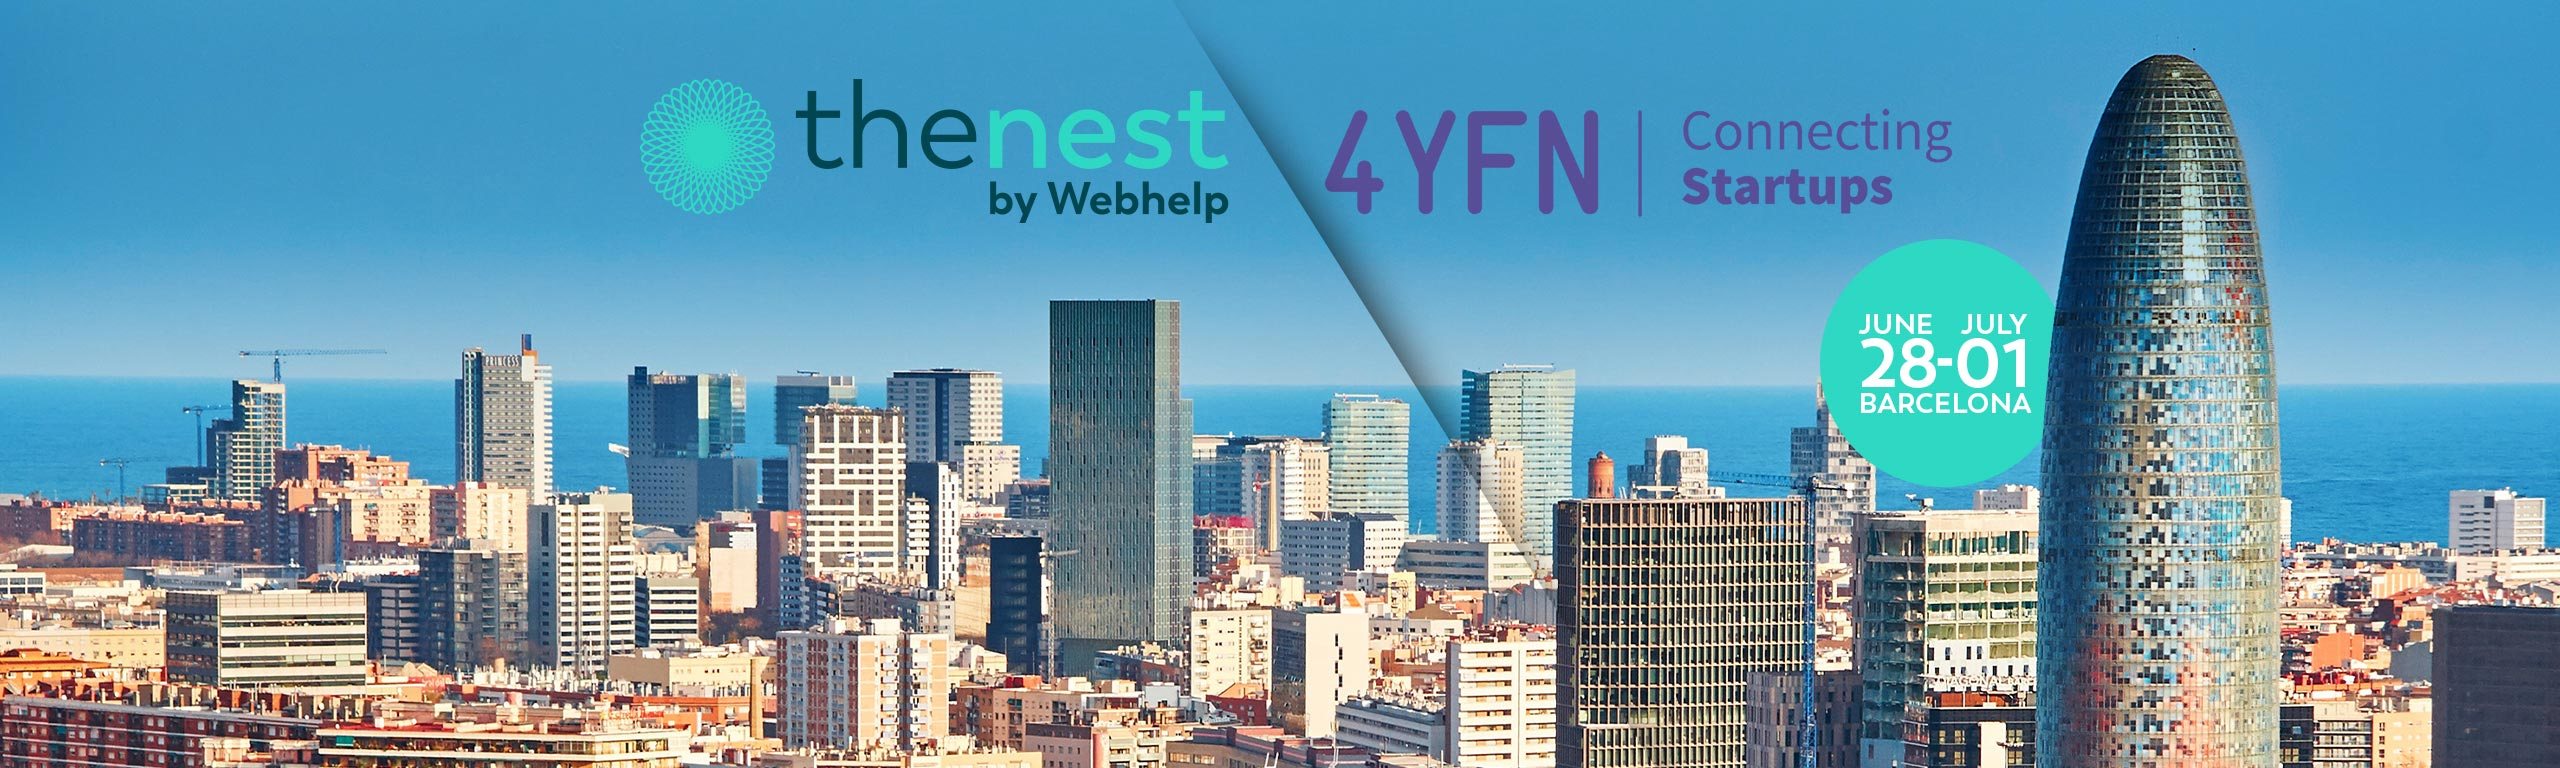 The Nest at 4YFN